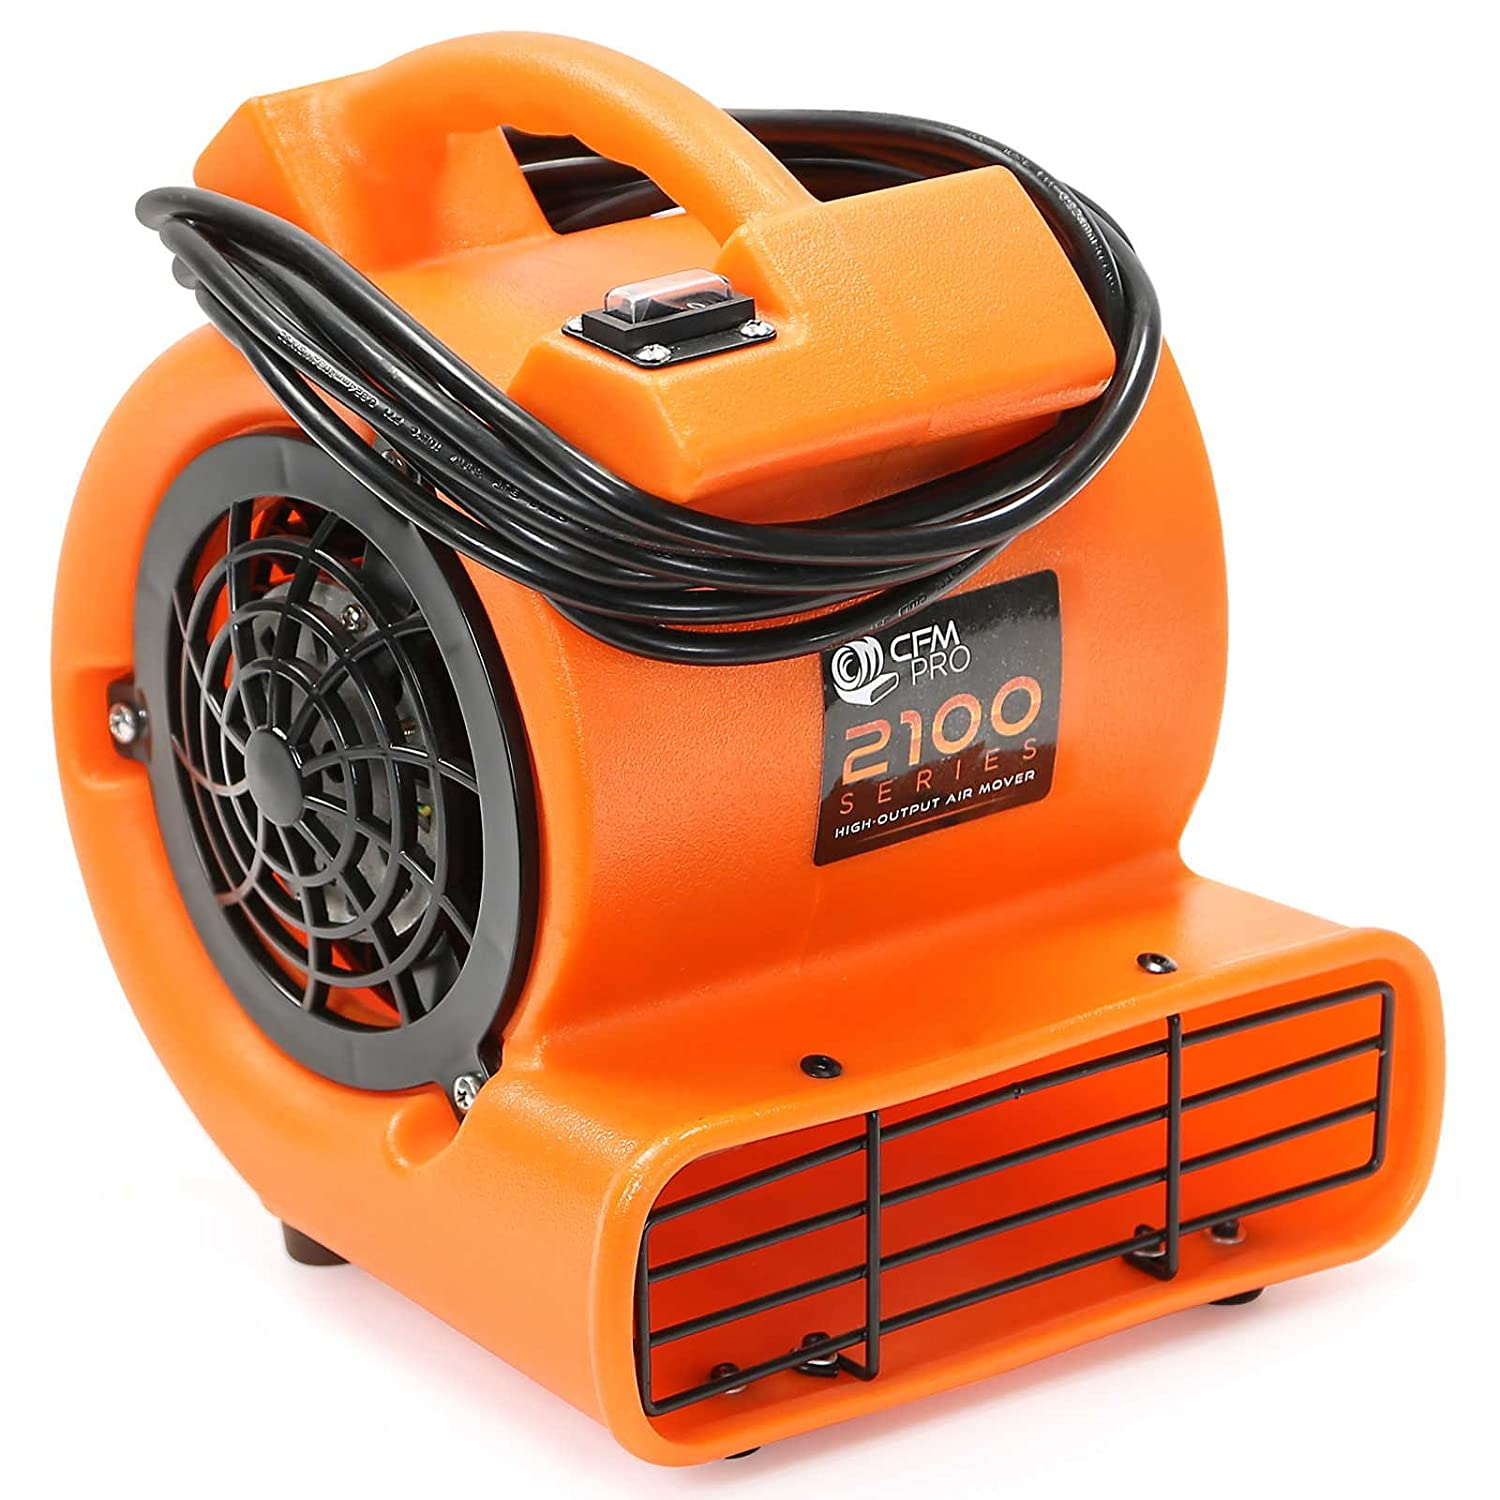 CFM Pro Mini Air Mover Carpet Floor Dryer 1 12 HP Blower Fan Orange Water Flood Damage Restoration